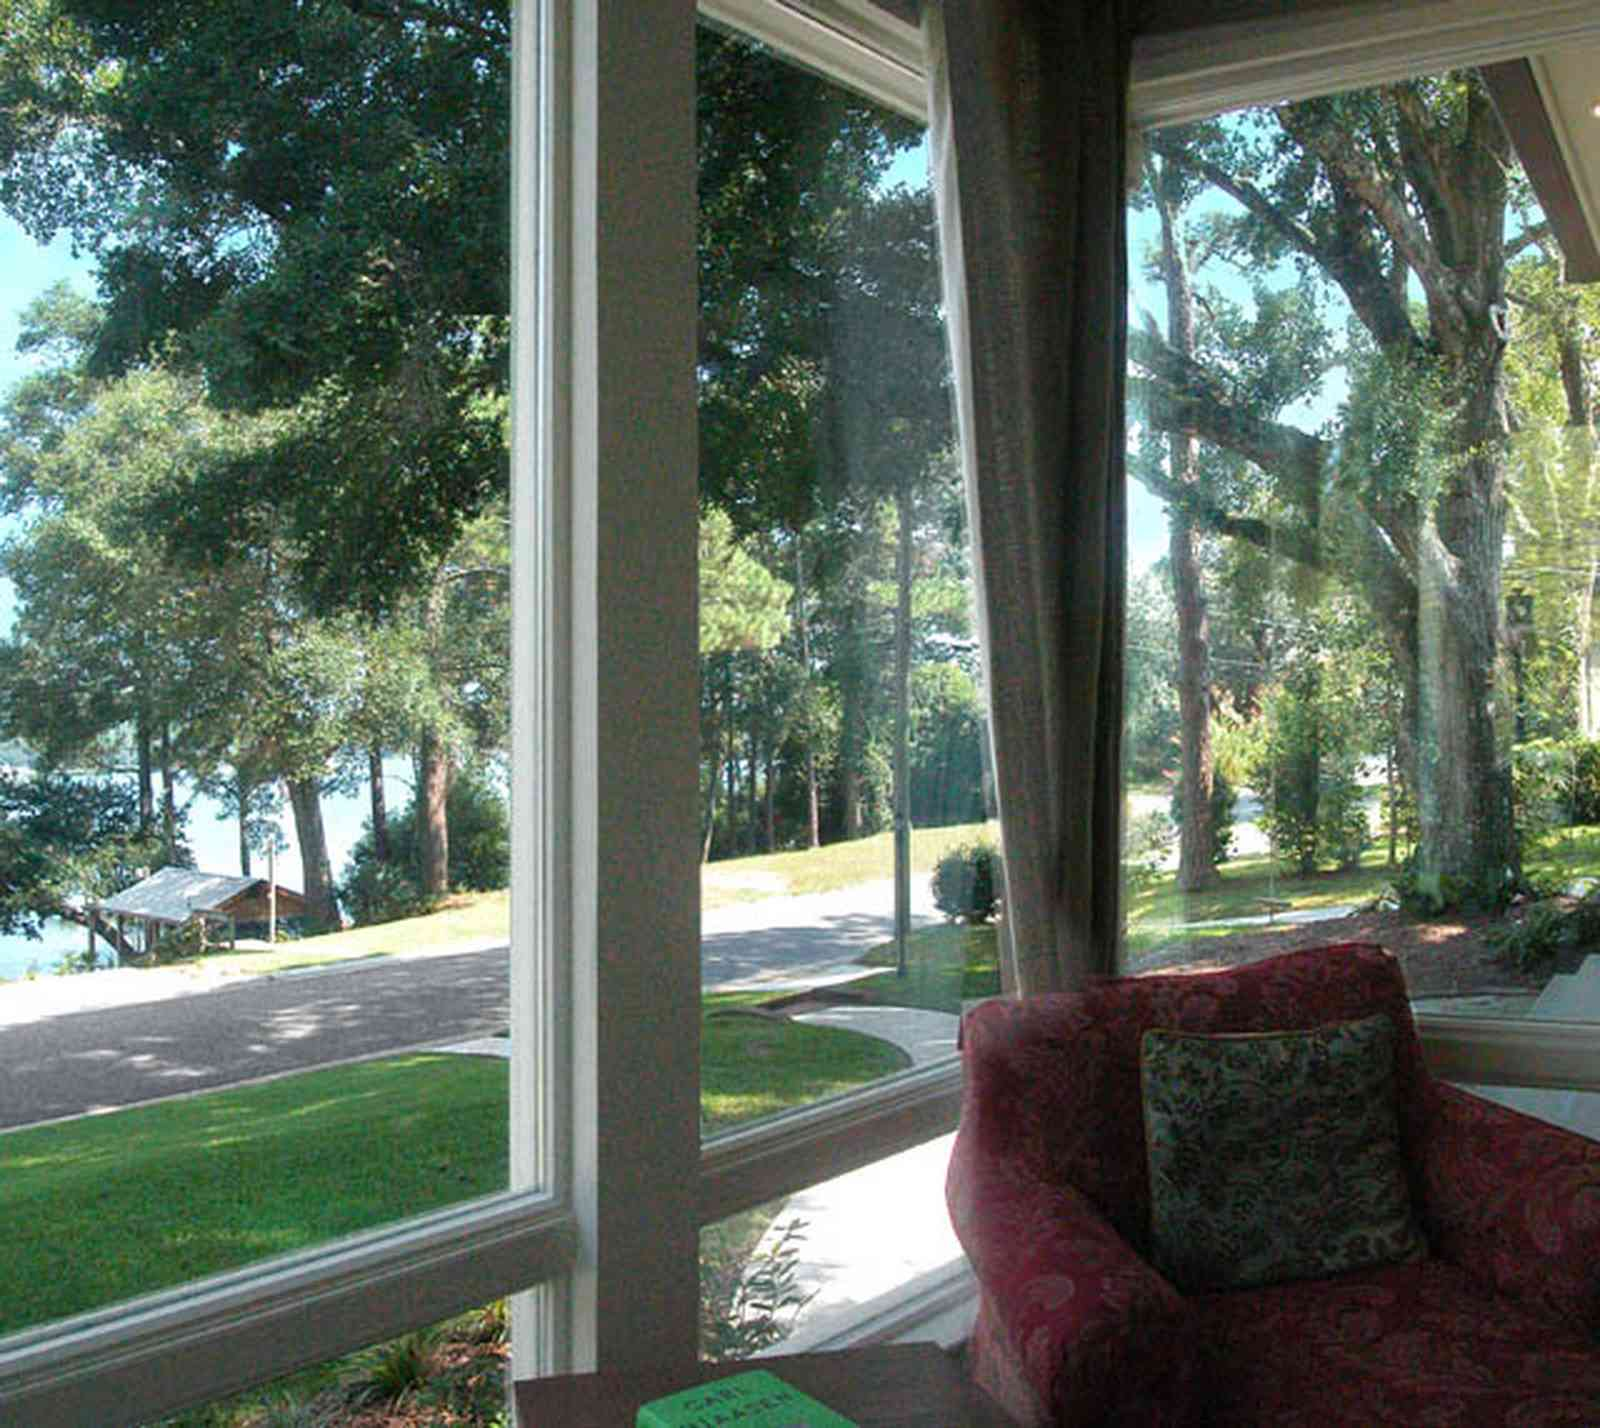 East-Hill:-2109-Whaley-Drive_07.jpg:  bayou texar, front room, porch, oak tree, green lawn, easy chair